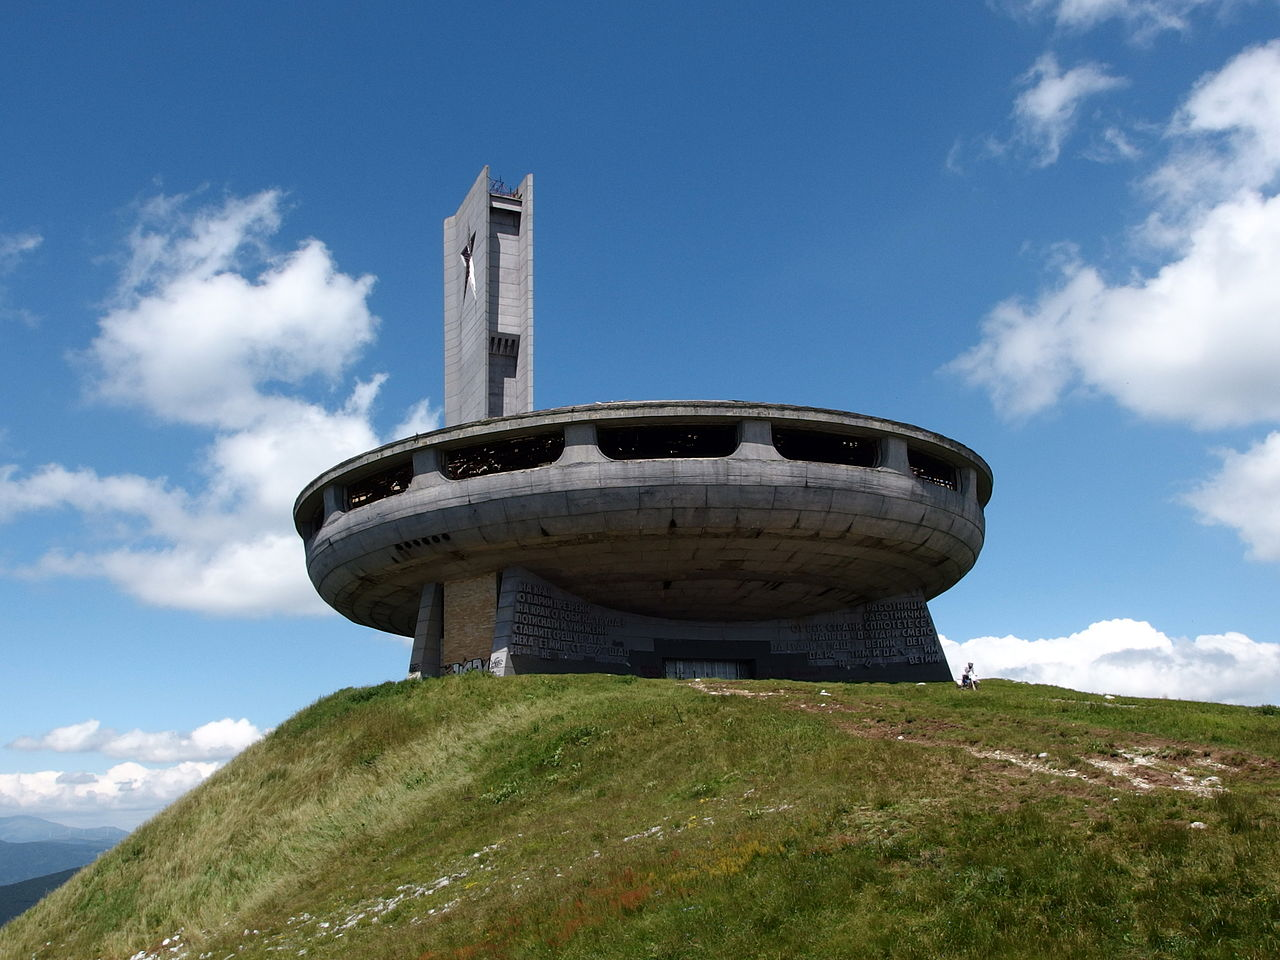 buzludzha monument, abandoned places